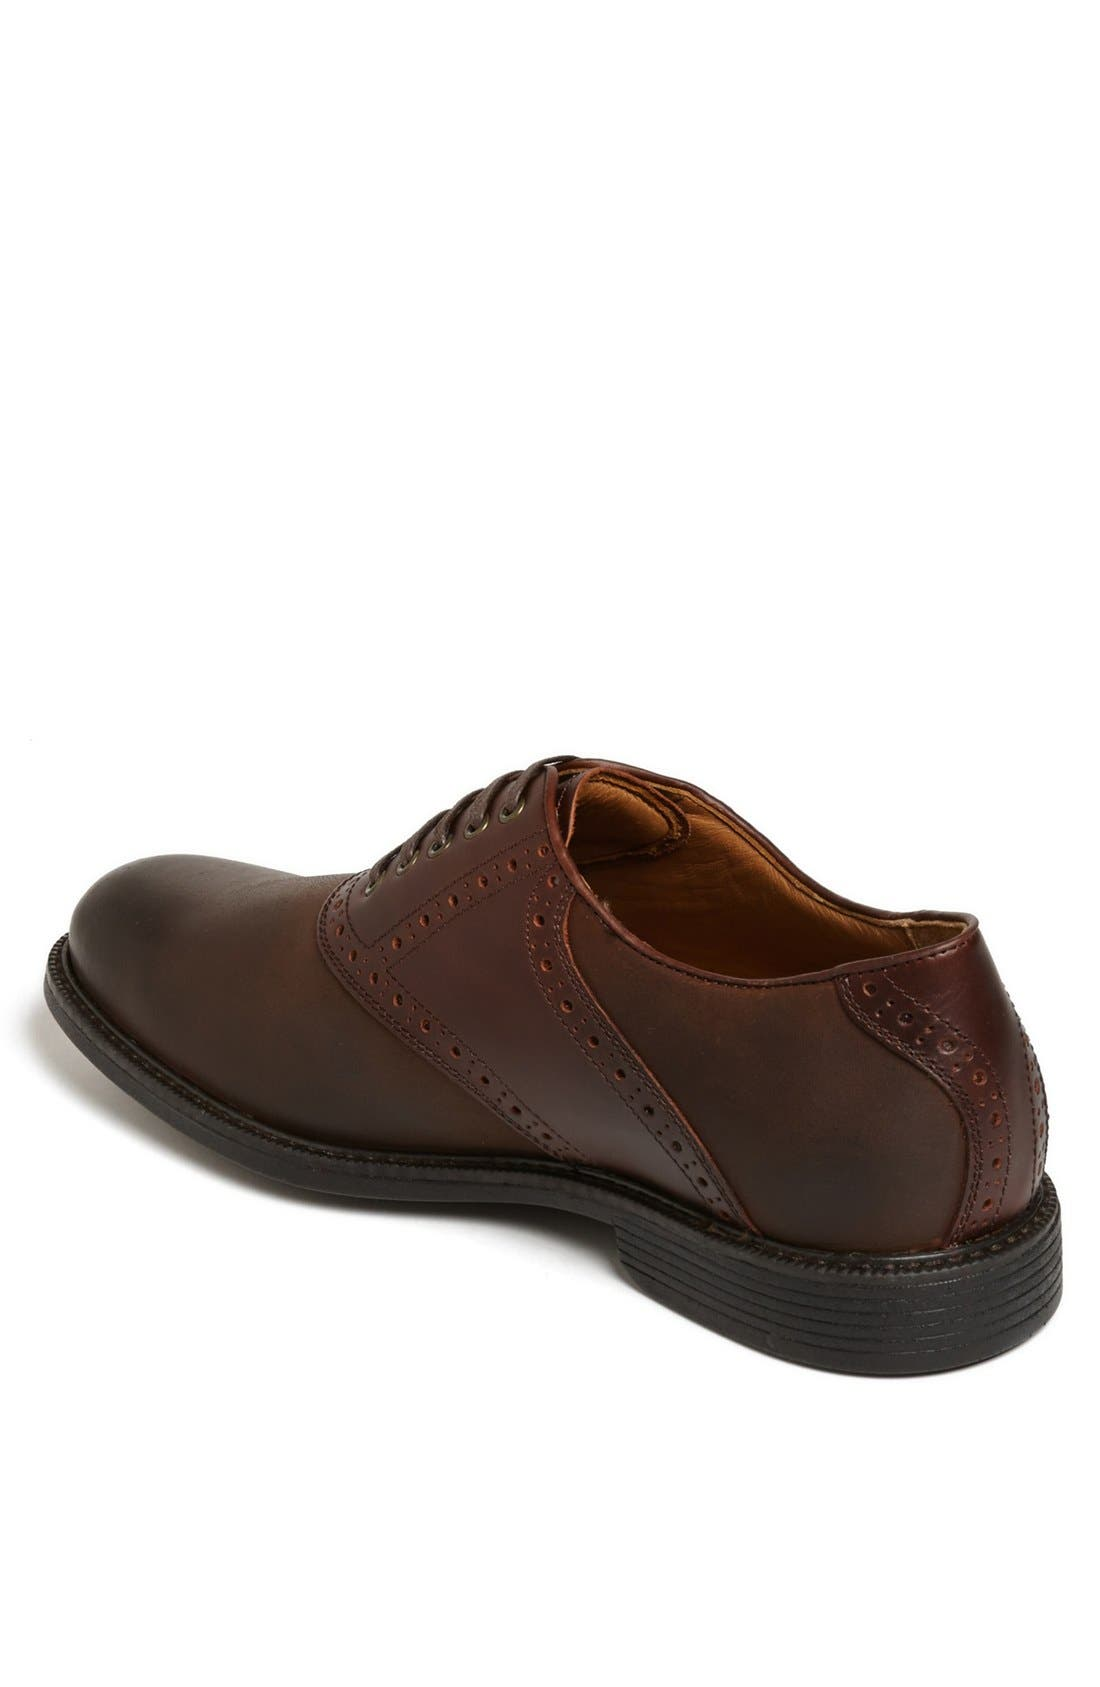 Alternate Image 2  - Johnston & Murphy 'Cardell' Waterproof Saddle Oxford (Men)